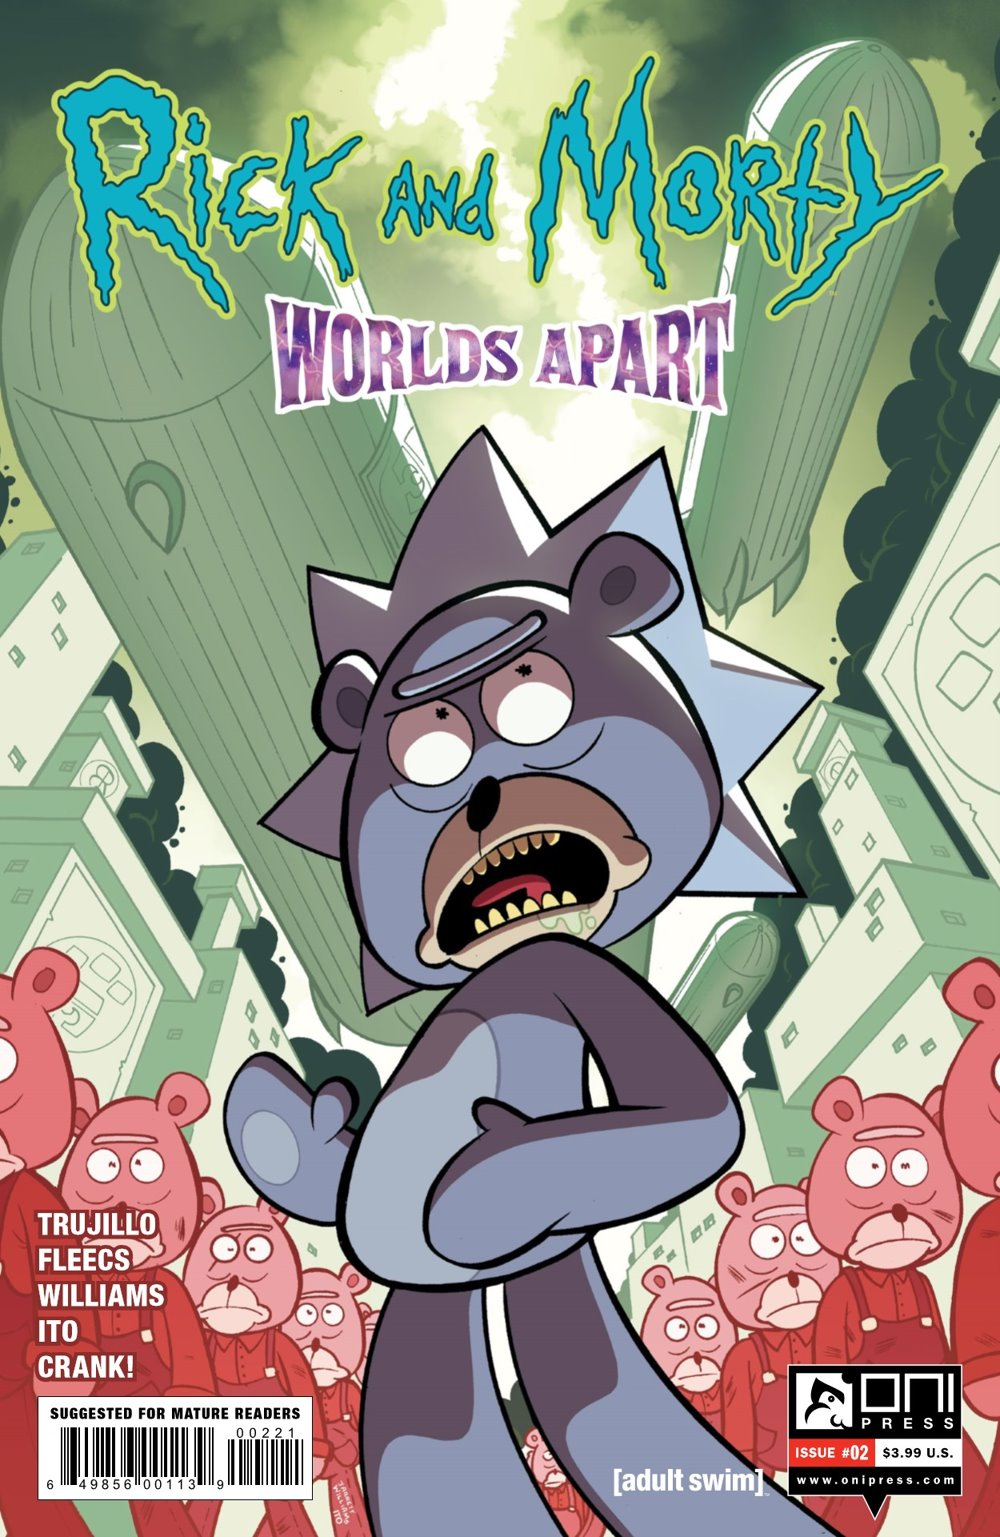 RICKMORTY-WORLDSAPART-2-REFERENCE-02 ComicList Previews: RICK AND MORTY WORLDS APART #2